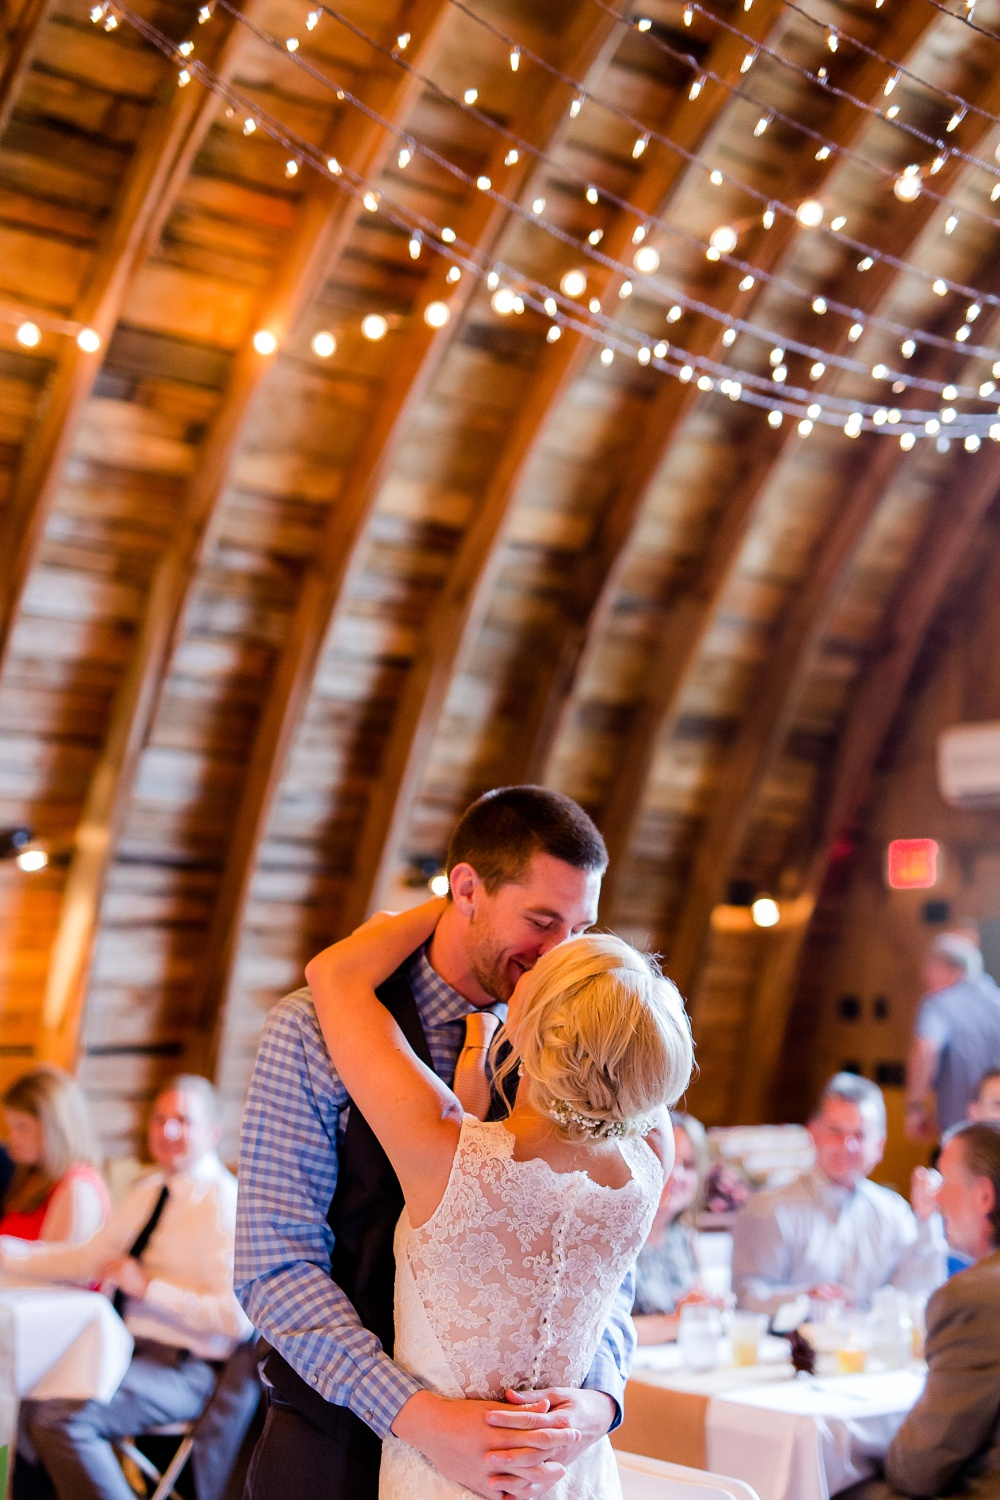 Fishing Themed, Lakeside Barn Wedding at The Barn at Five Lakes | Nicole & Eric | Photographed by Amber Langerud Photography located out of Audubon, MN